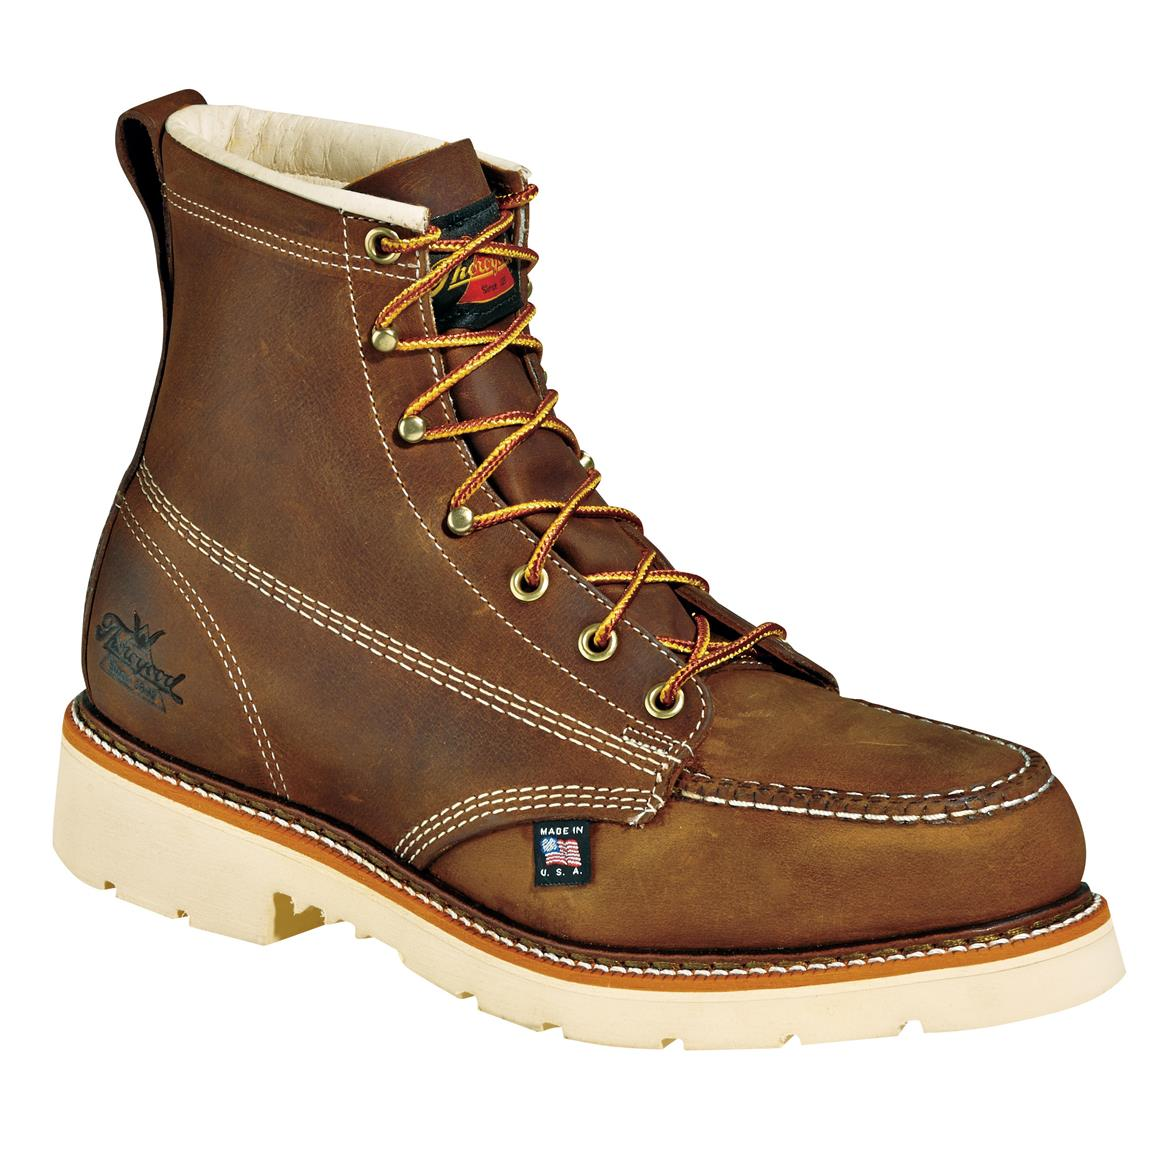 "Thorogood 6"" Steel Toe Job Pro Moc Toe Boots, Brown"